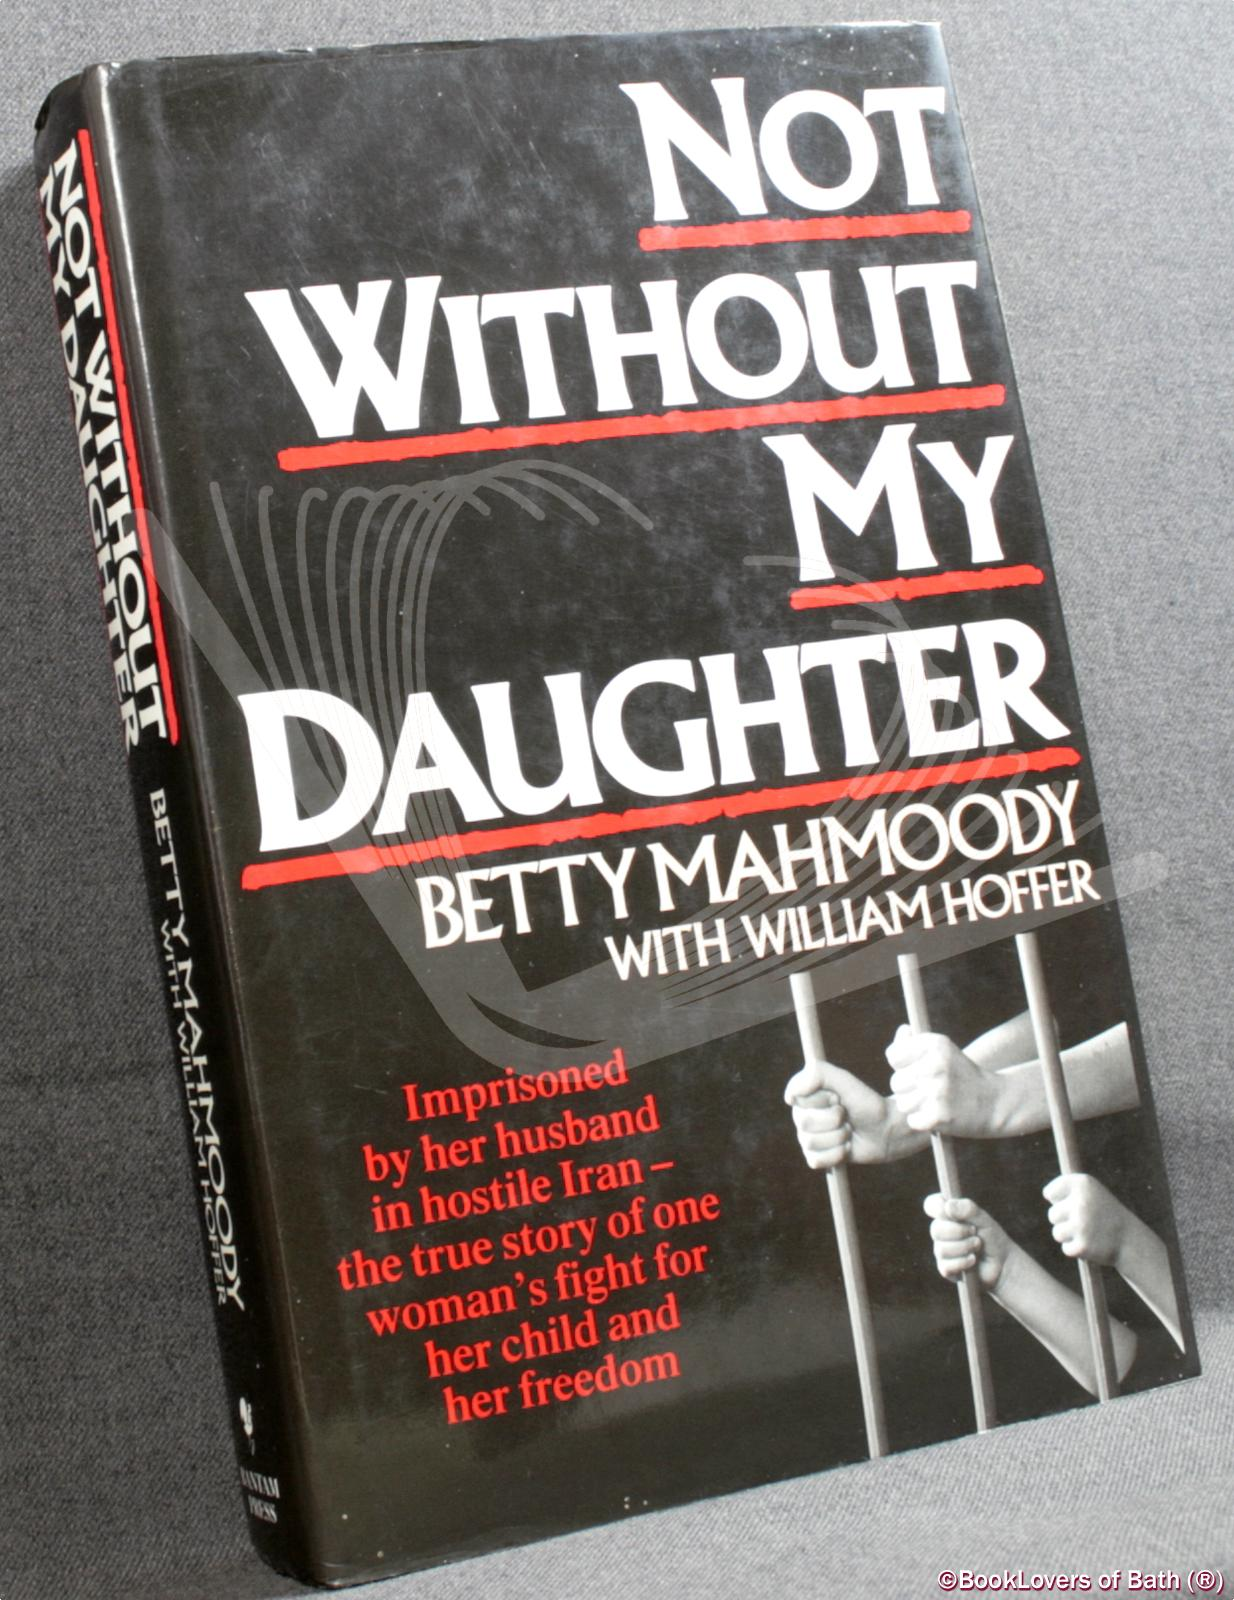 Not Without My Daughter - Betty Mahmoody with William Hoffer